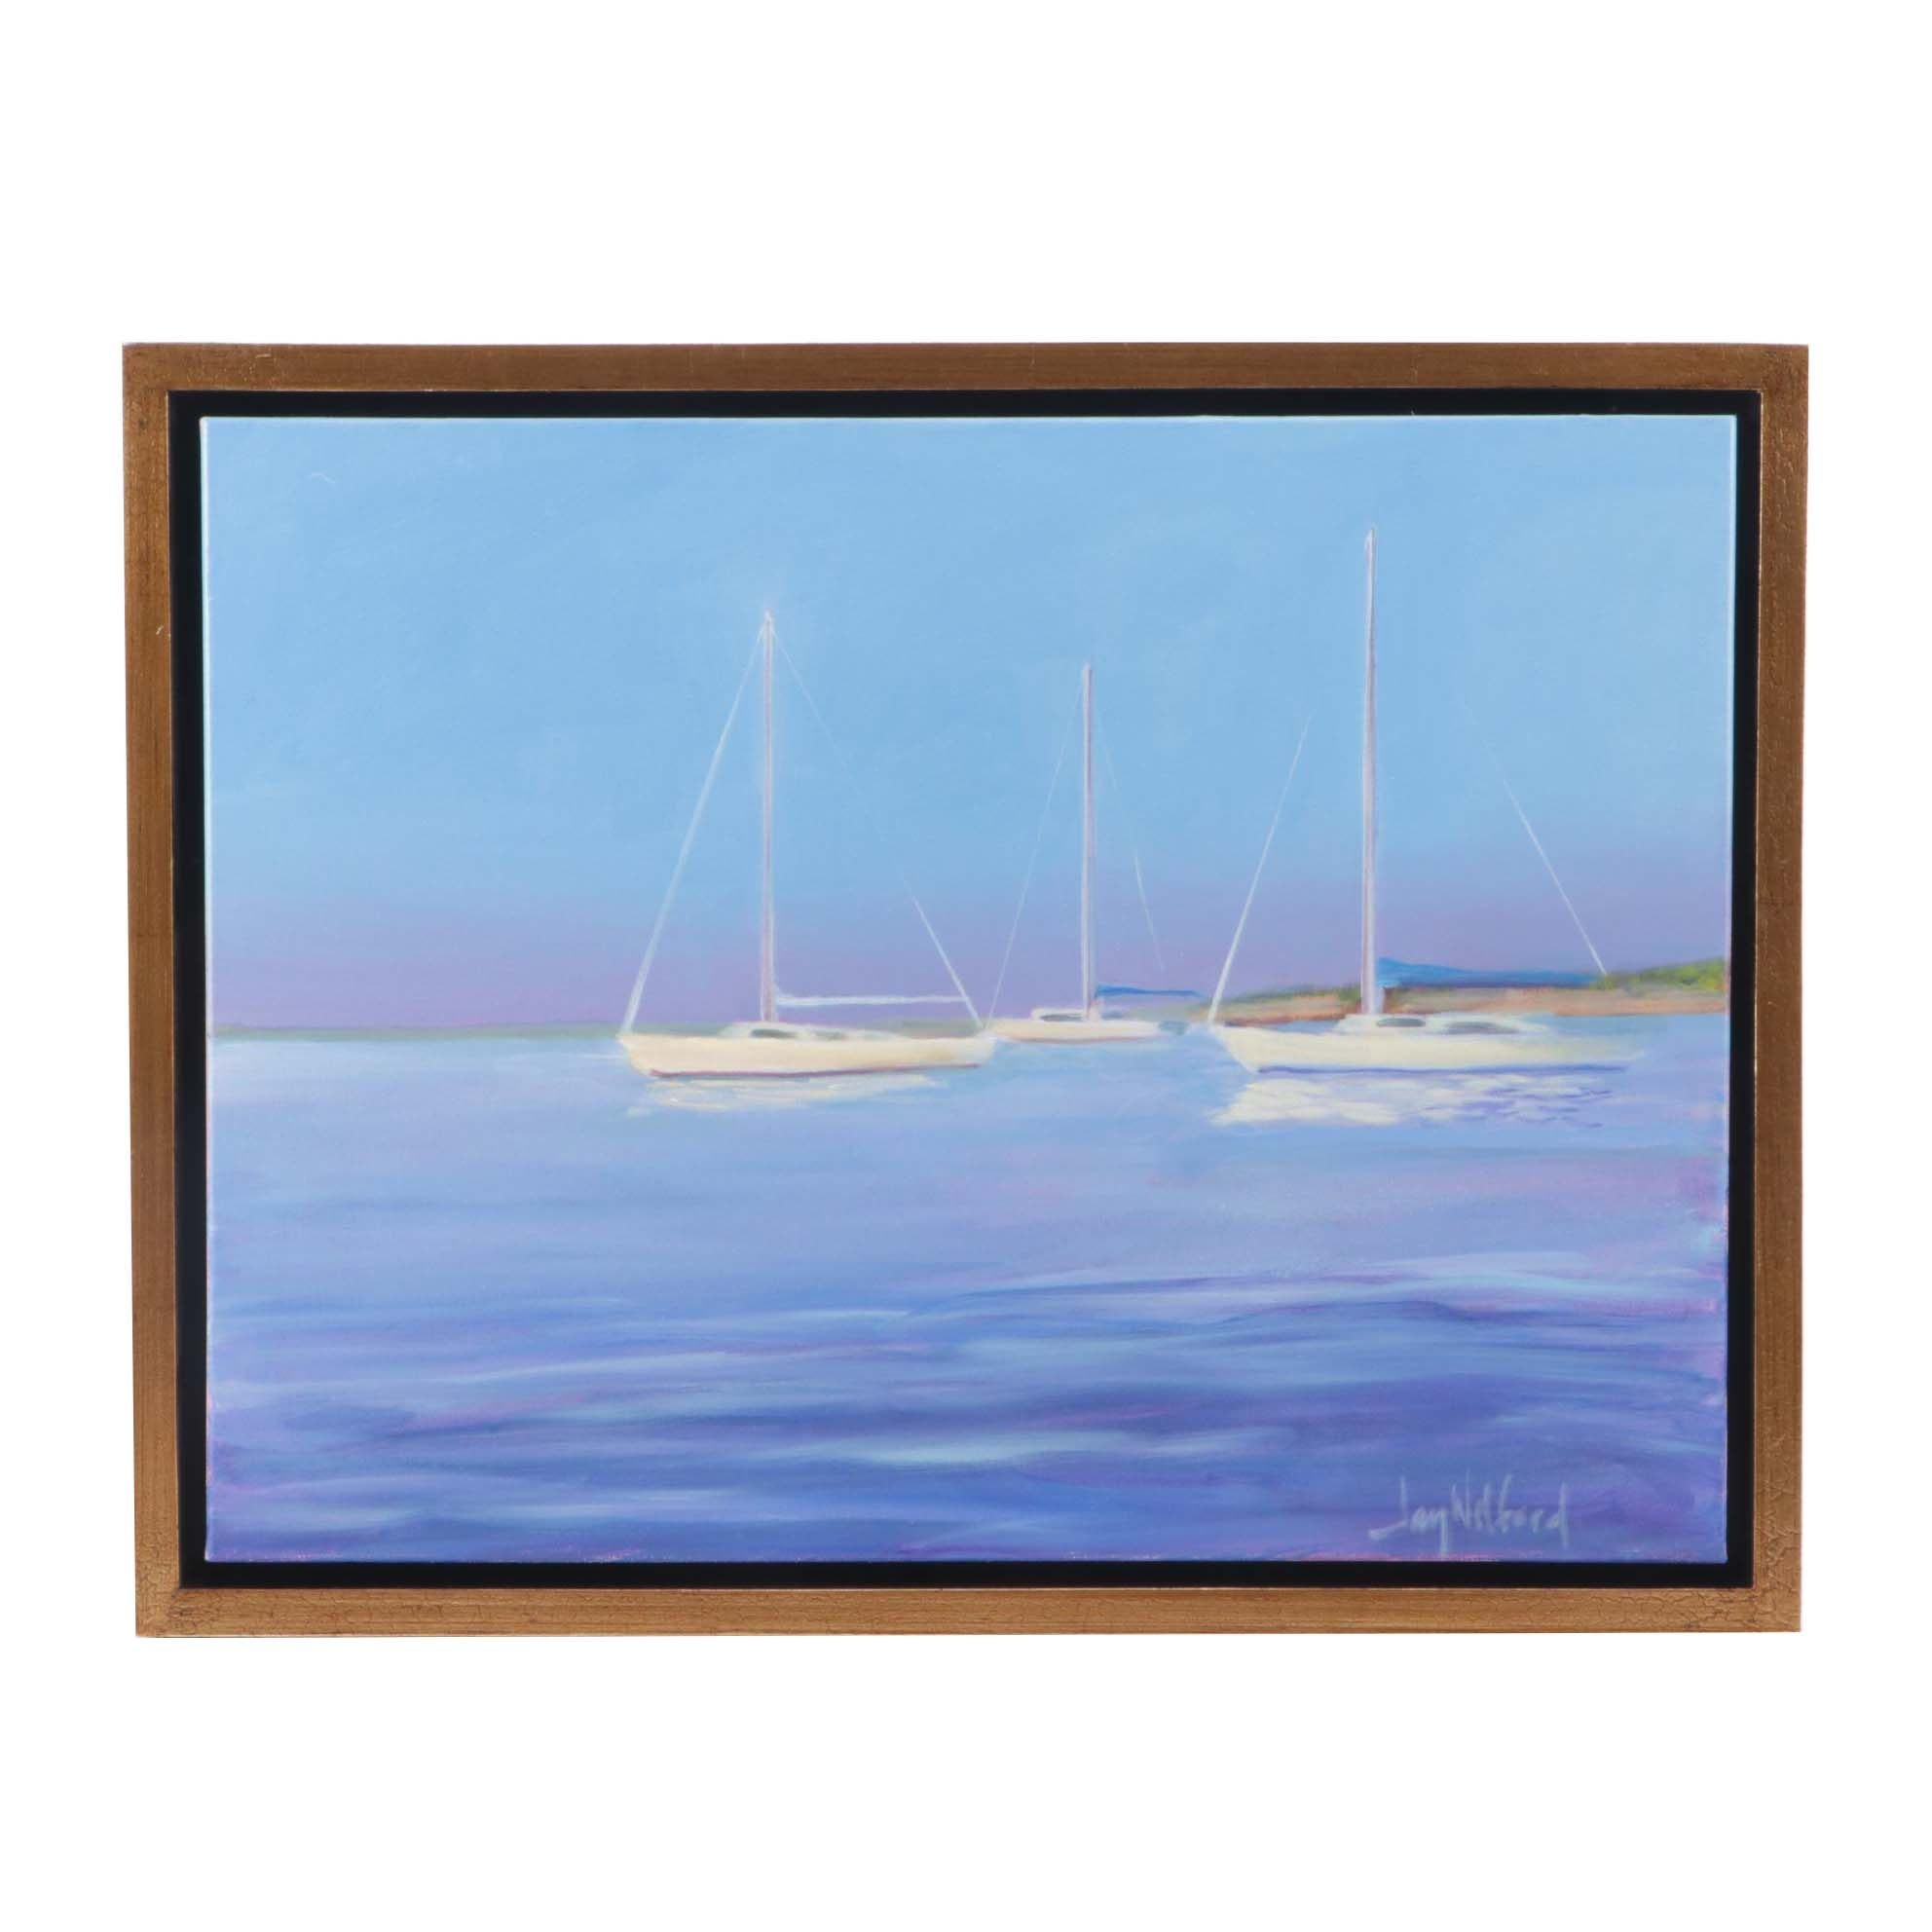 Jay Wilford Contemporary Nautical Oil Painting